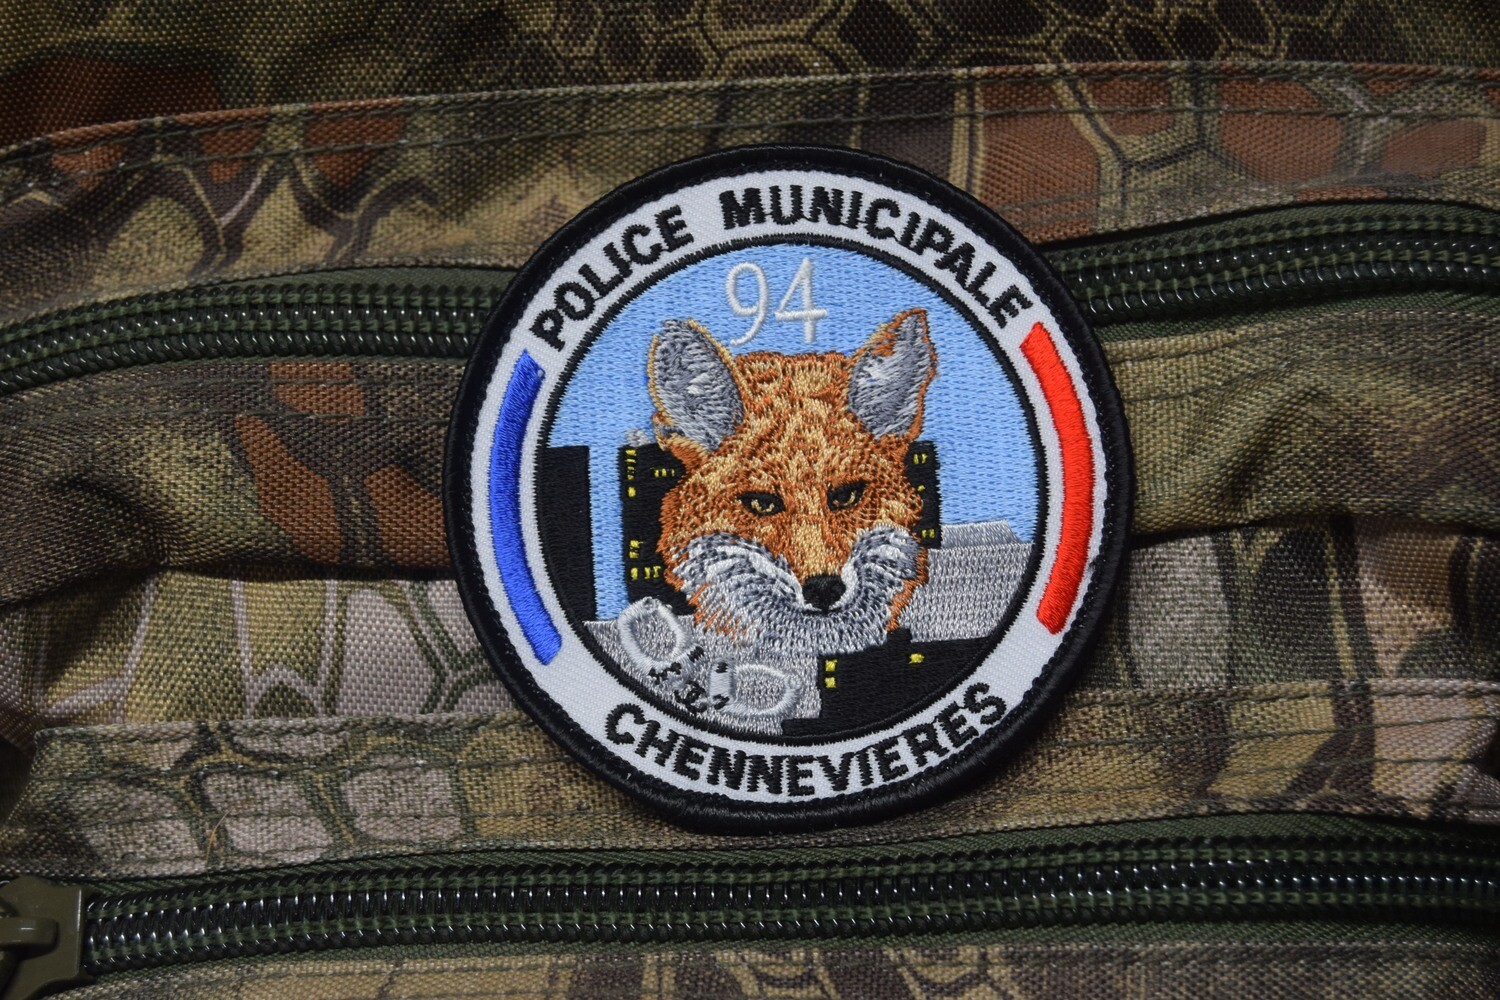 Patch Police Municipale 94 CHENNEVIERES